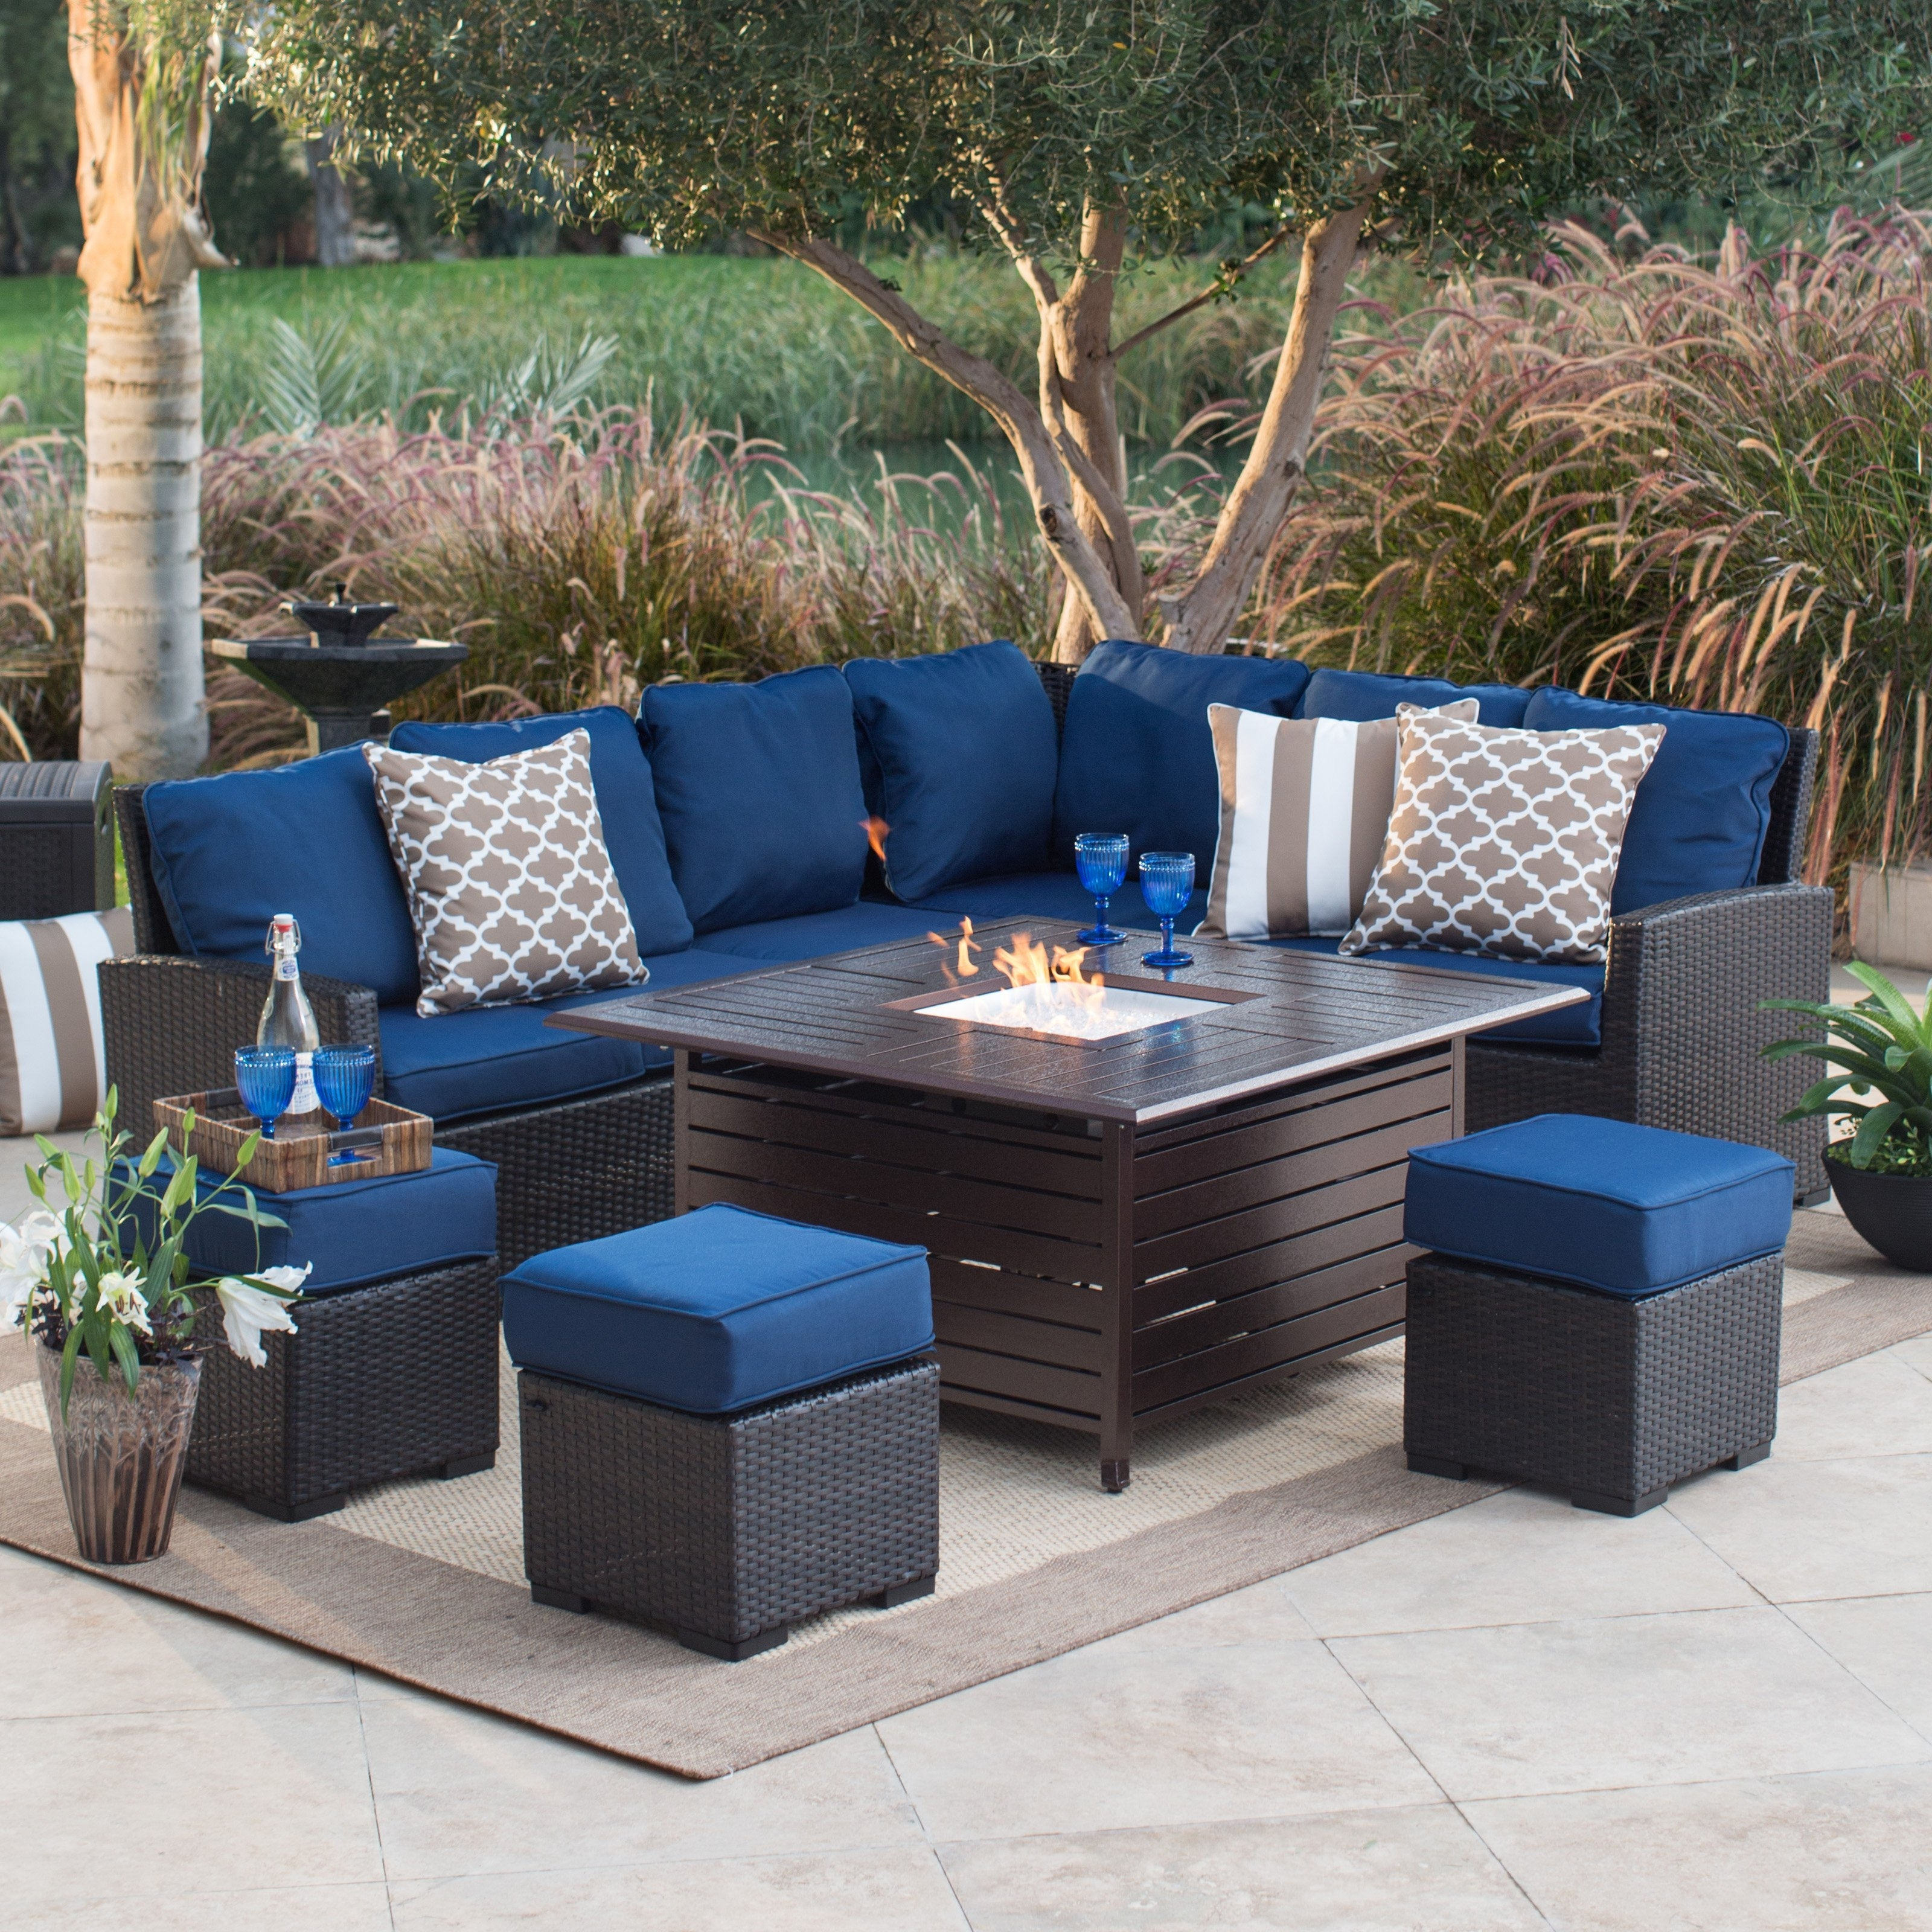 Well Liked Fire Pit Set Clearance Patio Conversation Sets With Swivel Chairs 4 Regarding Patio Conversation Sets With Gas Fire Pit (View 15 of 15)